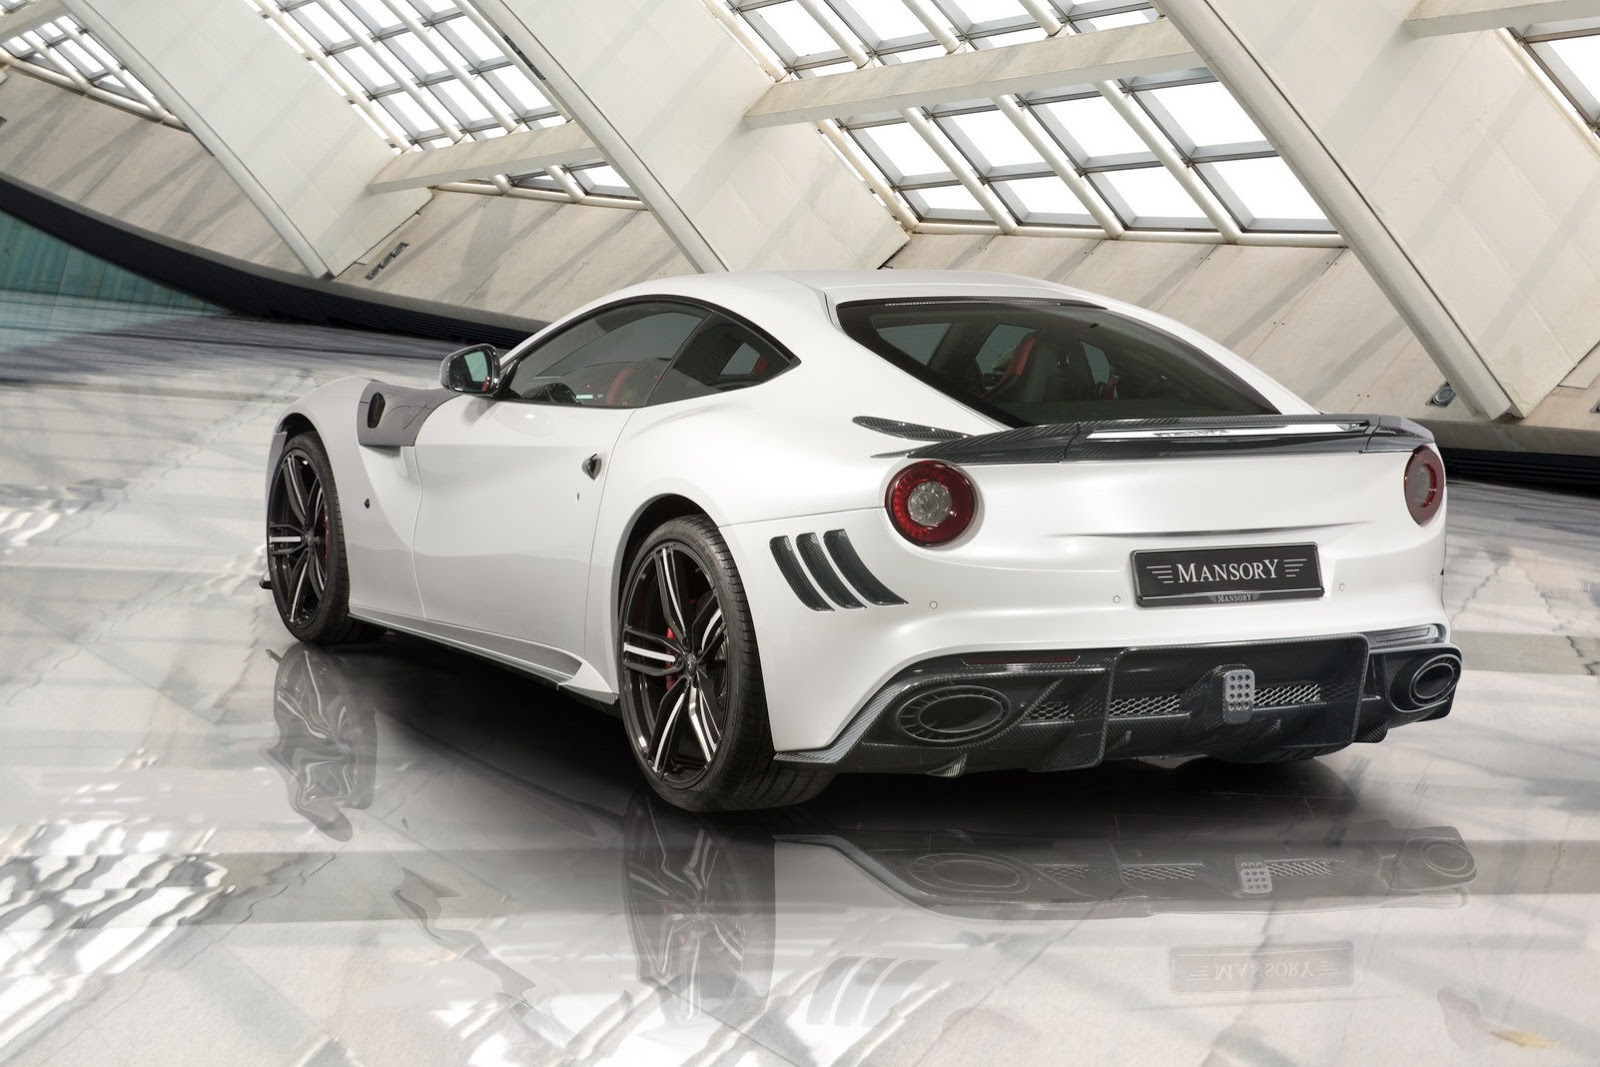 The New Ferrari F12-Based Mansory Stallone Is Revealed ...